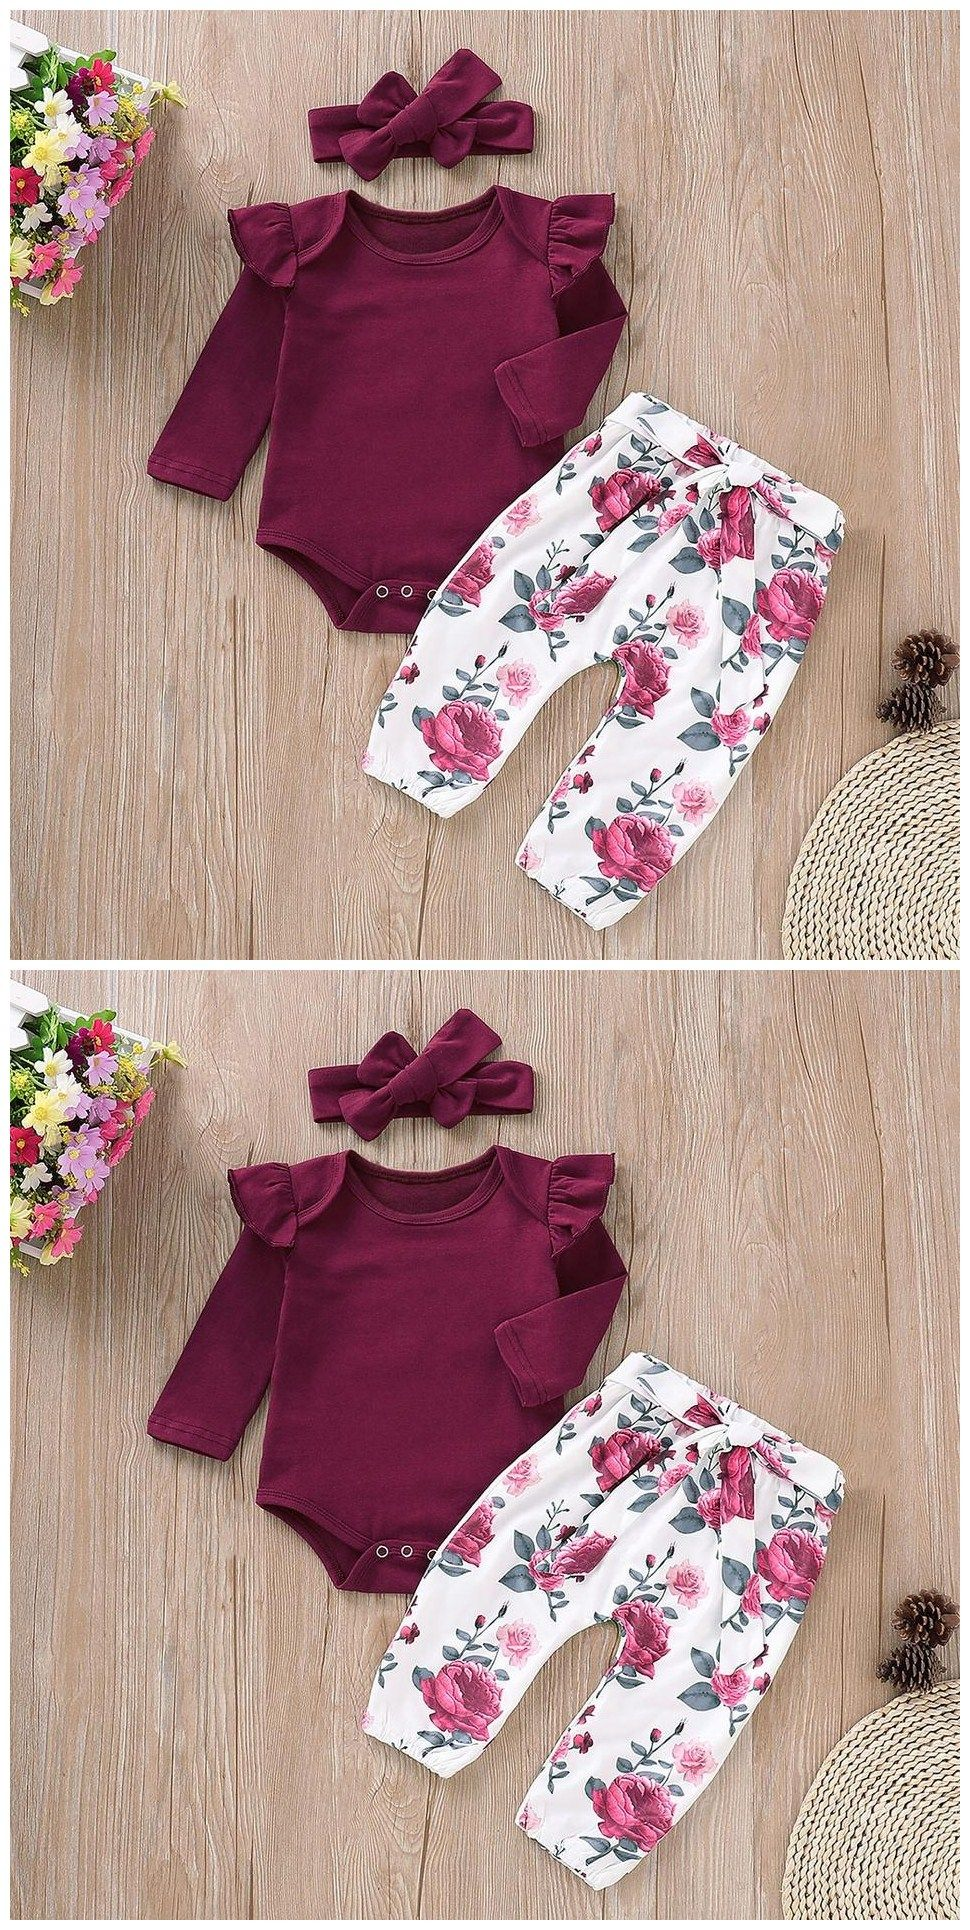 Baby Girl Clothes Soft And Comfortable T-shirt Pants Jumpsuit Sets At Any Cost Infant Kids Winter Baby Fashion Style Baby Boy Clothes Set Mother & Kids